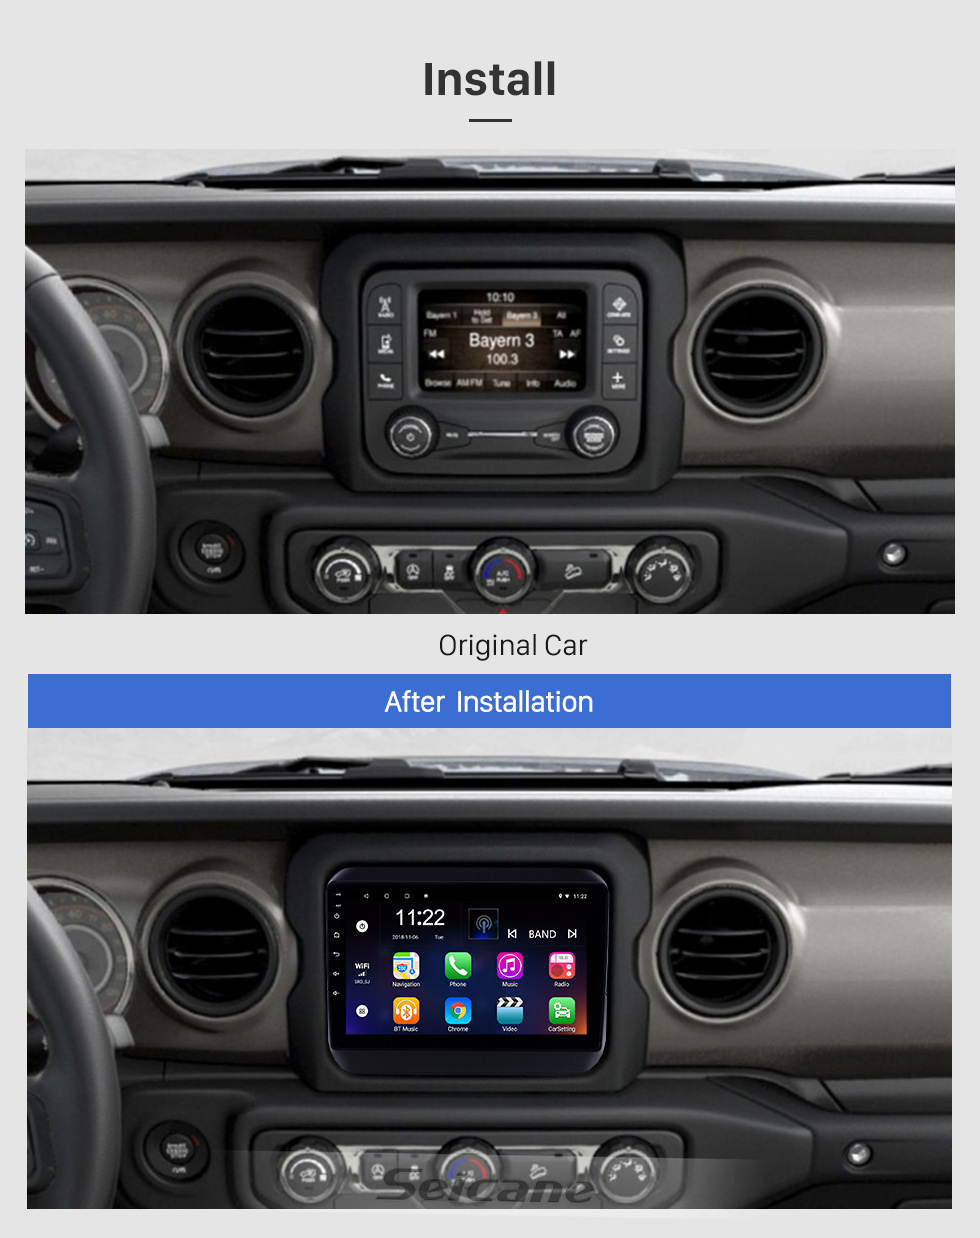 Seicane 9 inch Android 8.1 GPS Navigation Radio for 2018 Jeep Wrangler with Bluetooth WIFI USB AUX HD Touchscreen support Carplay DVR OBD